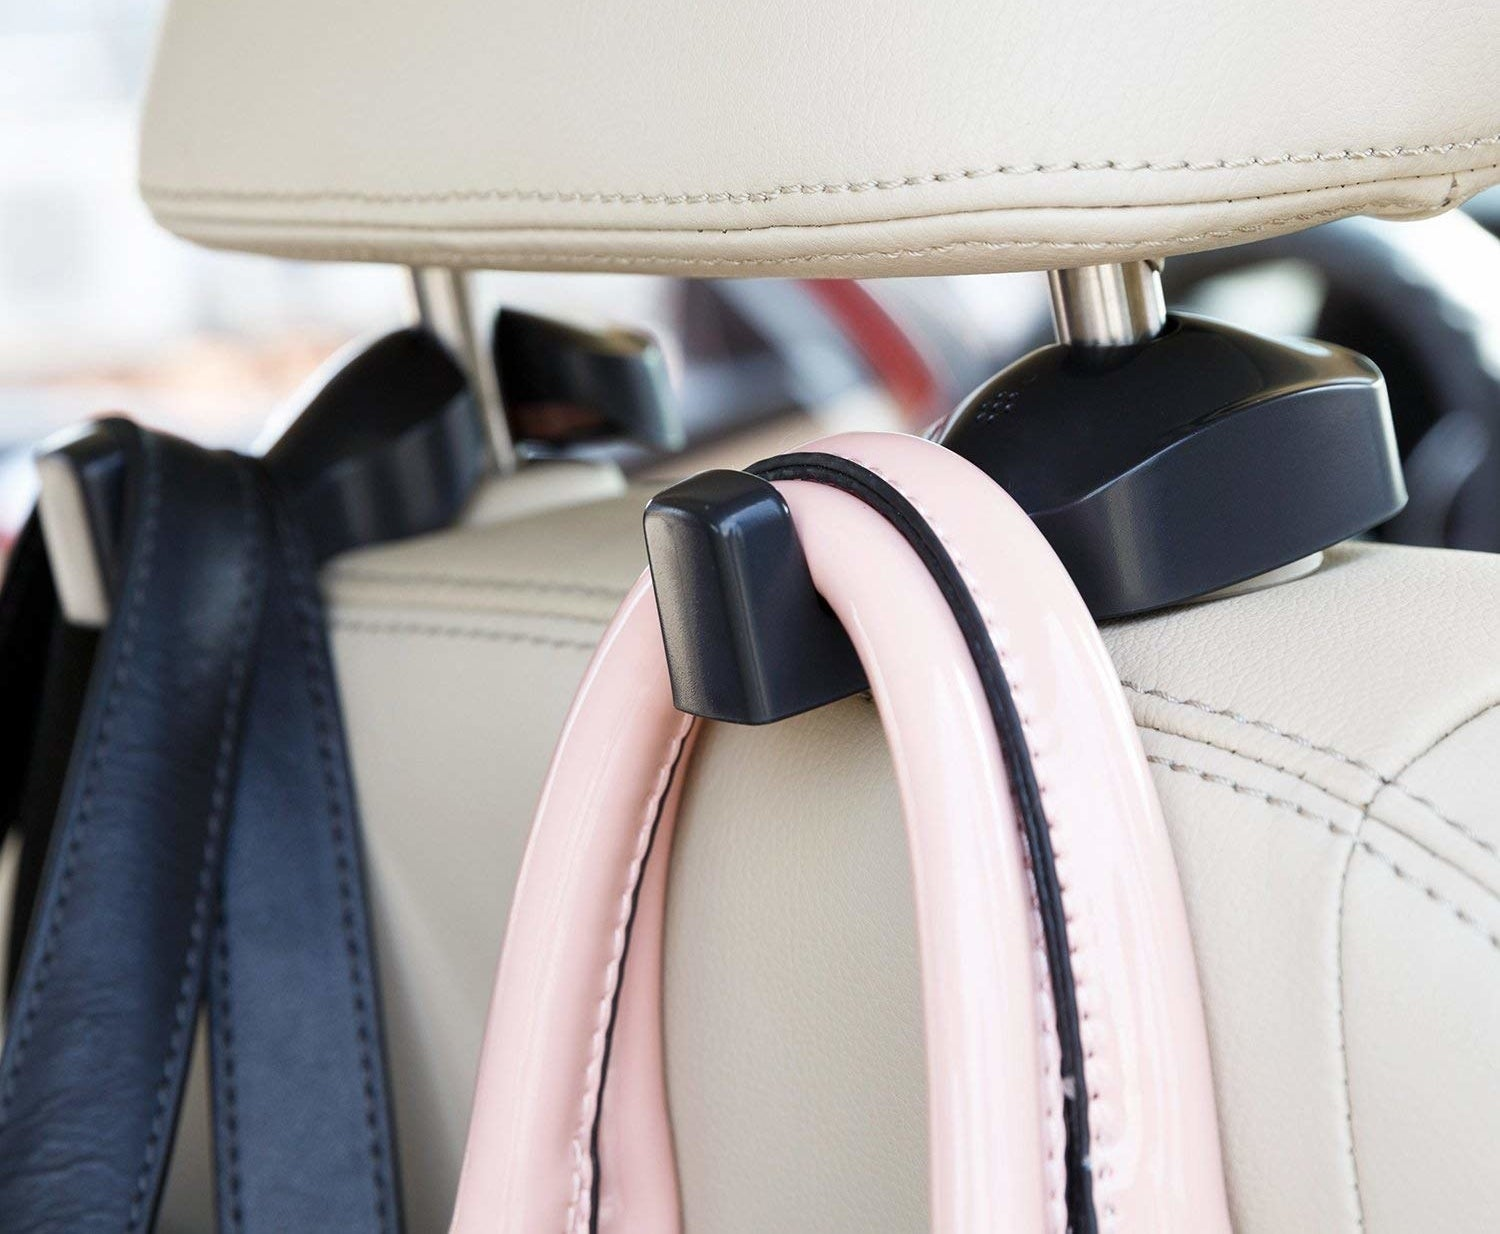 Hooks attached to the car headrest each holding what appear to be handbag straps